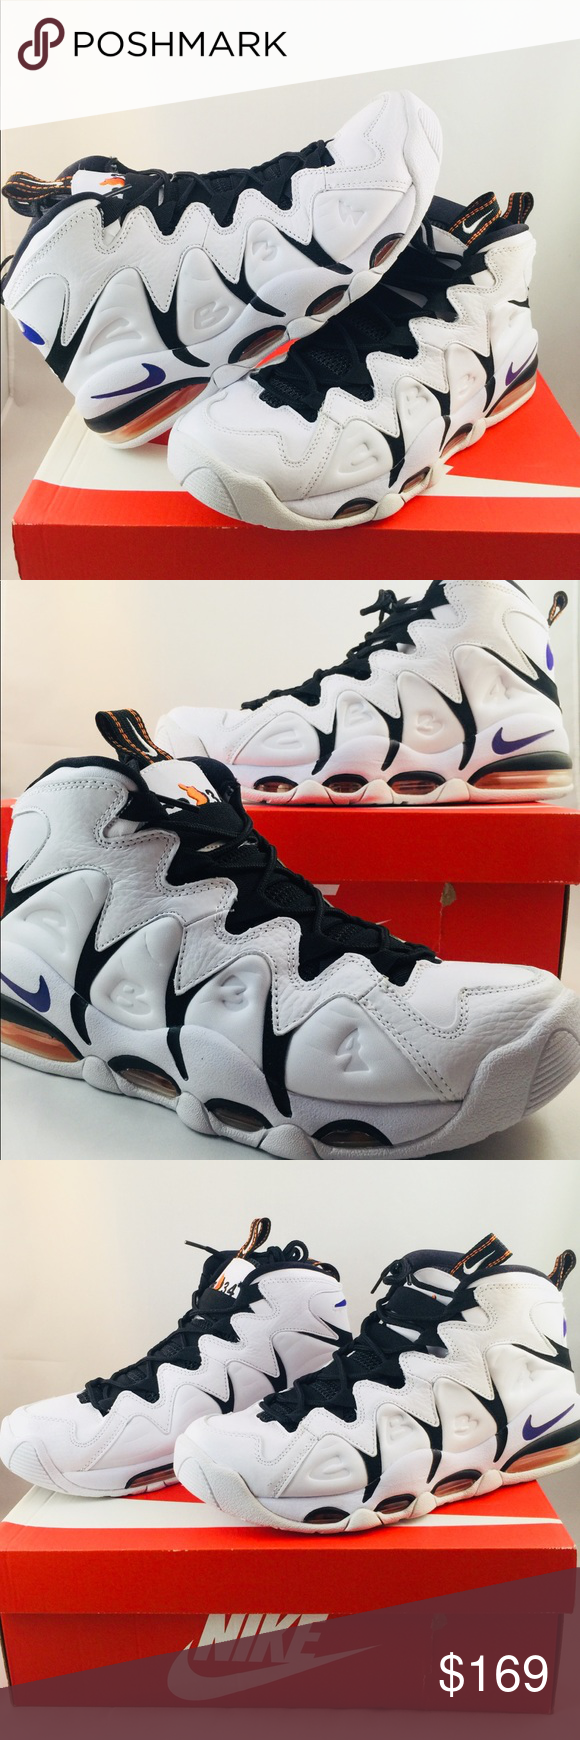 e6c8fc2167d Brand new STYLE    414243-100 COLORWAY  White Varsity Purple-Black-Orange  Blaze MENS SIZE 10 Nike Shoes Athletic Shoes. Nike Air Max CB34 Charles  Barkley ...